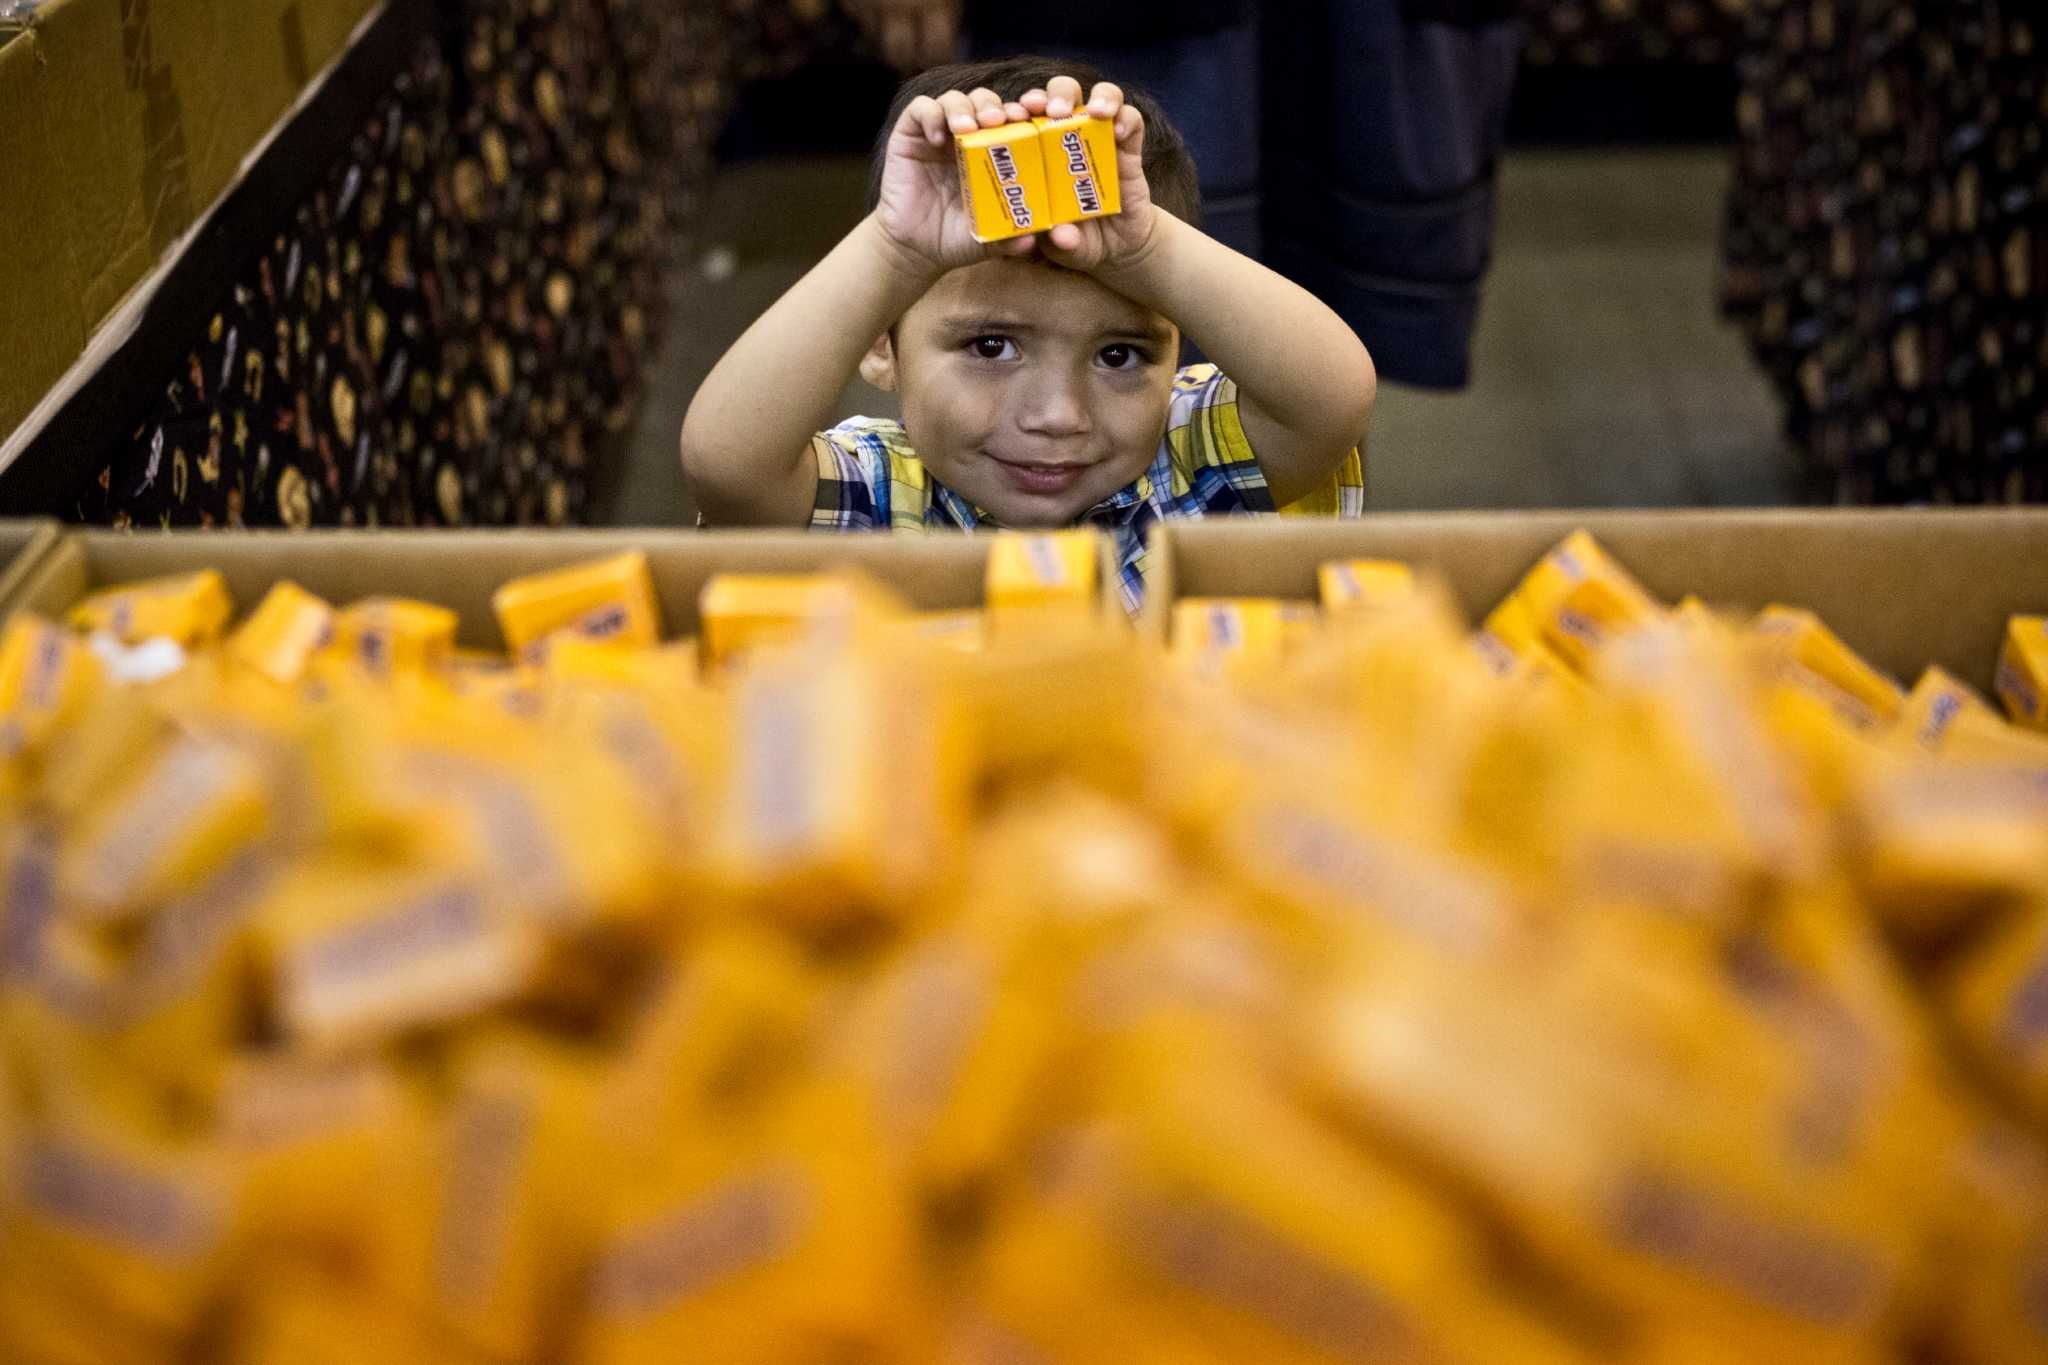 Houston's No. 1 Halloween candy is ... Milk Duds?